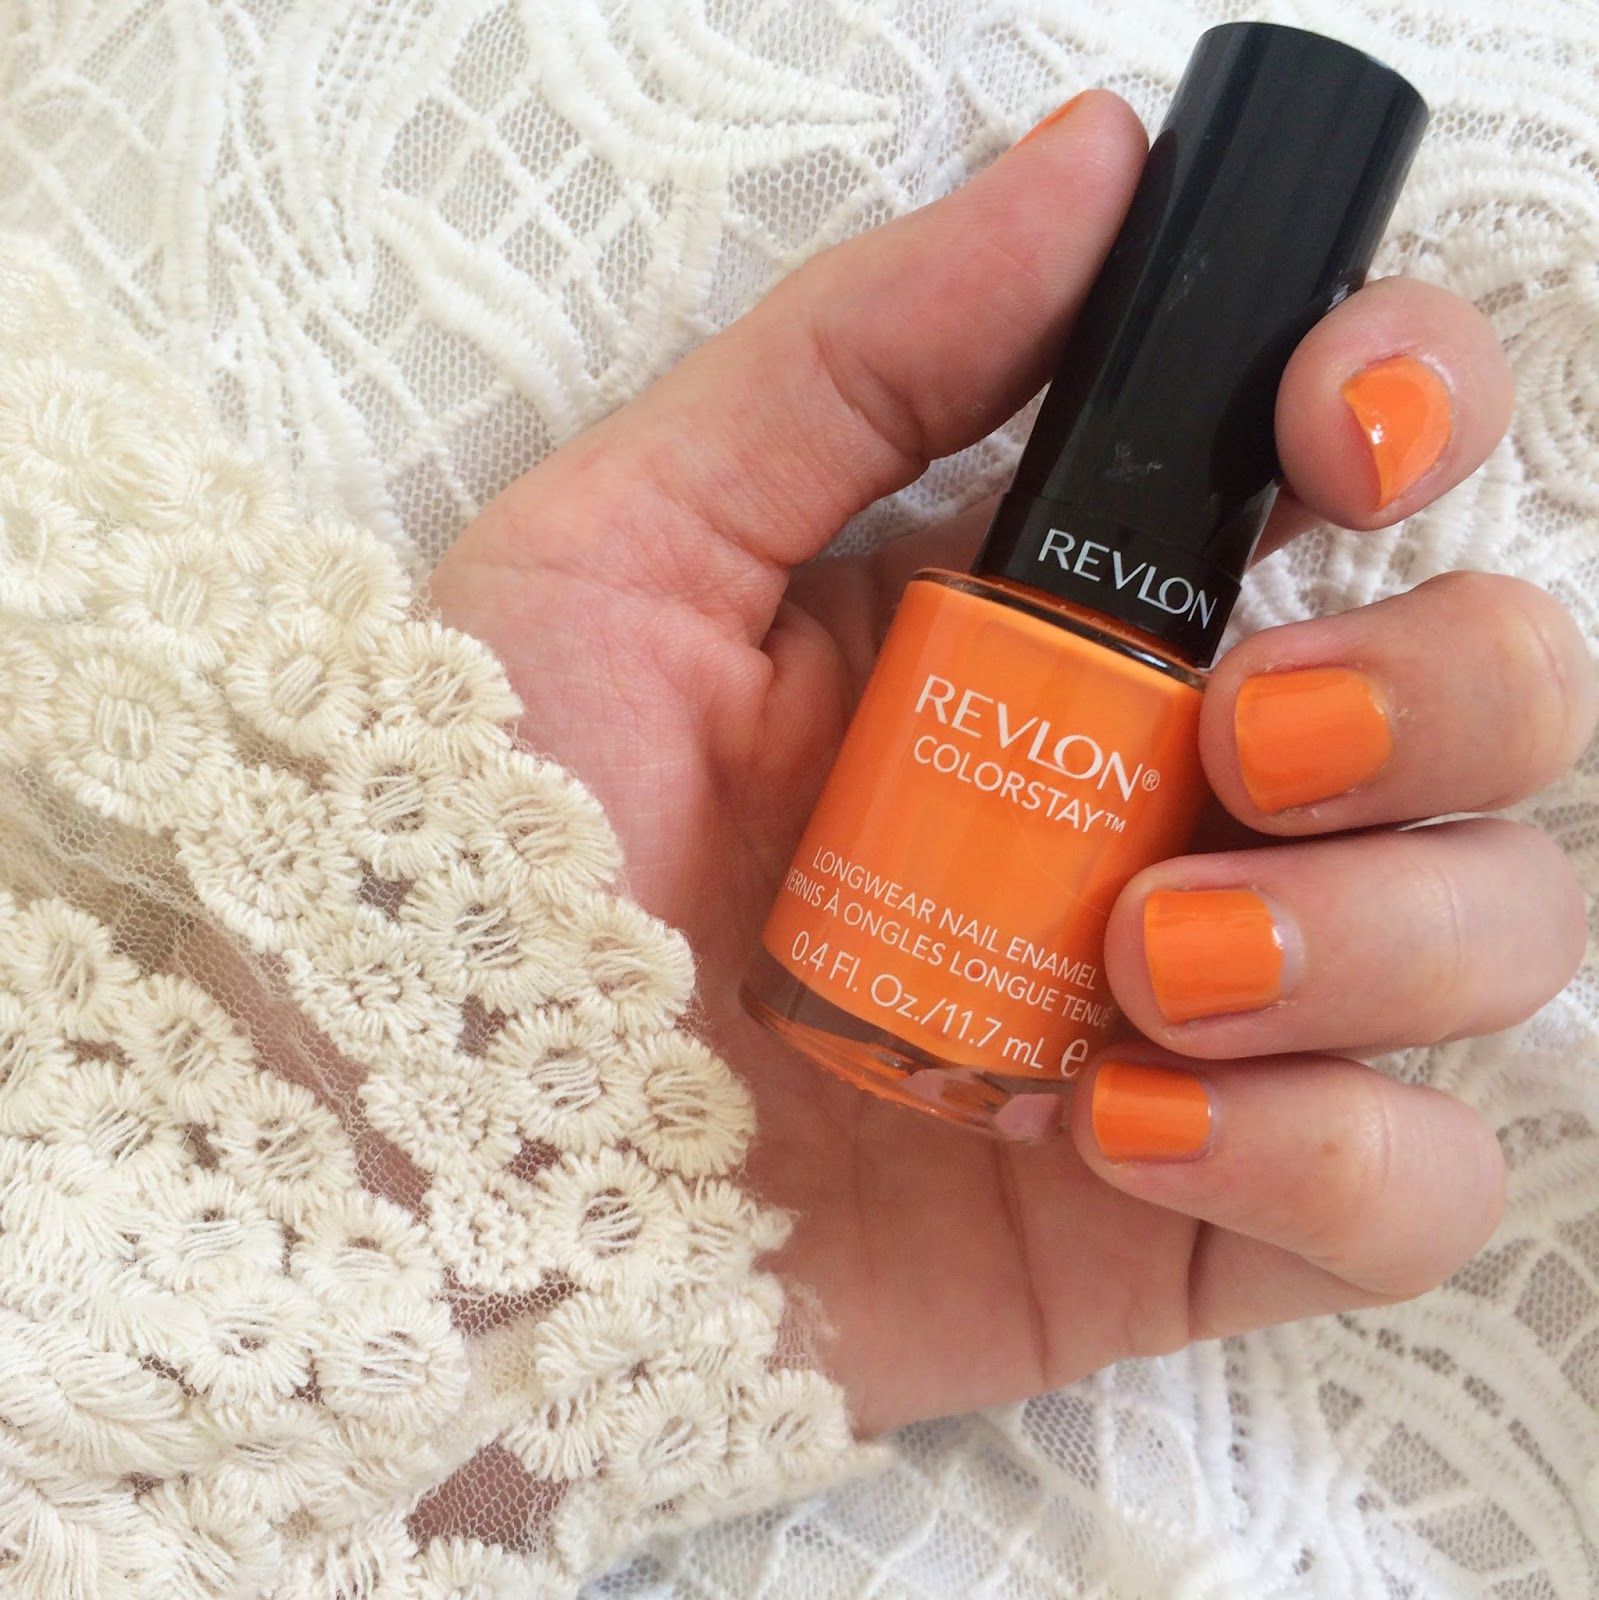 Revlon Nail Polish in Sorbet